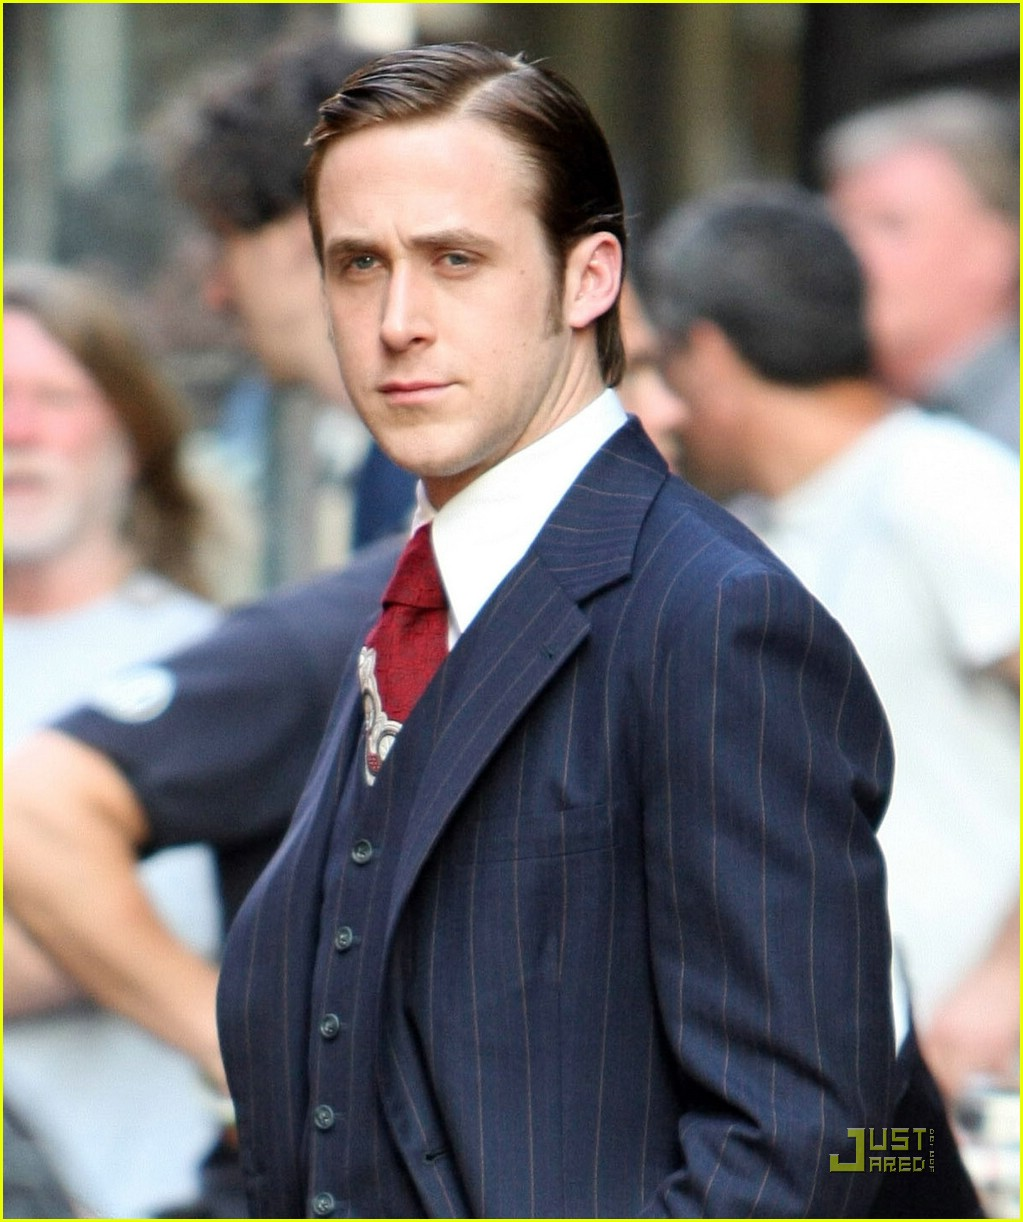 Ryan Gosling Suit Ryan gosling suits up nicely